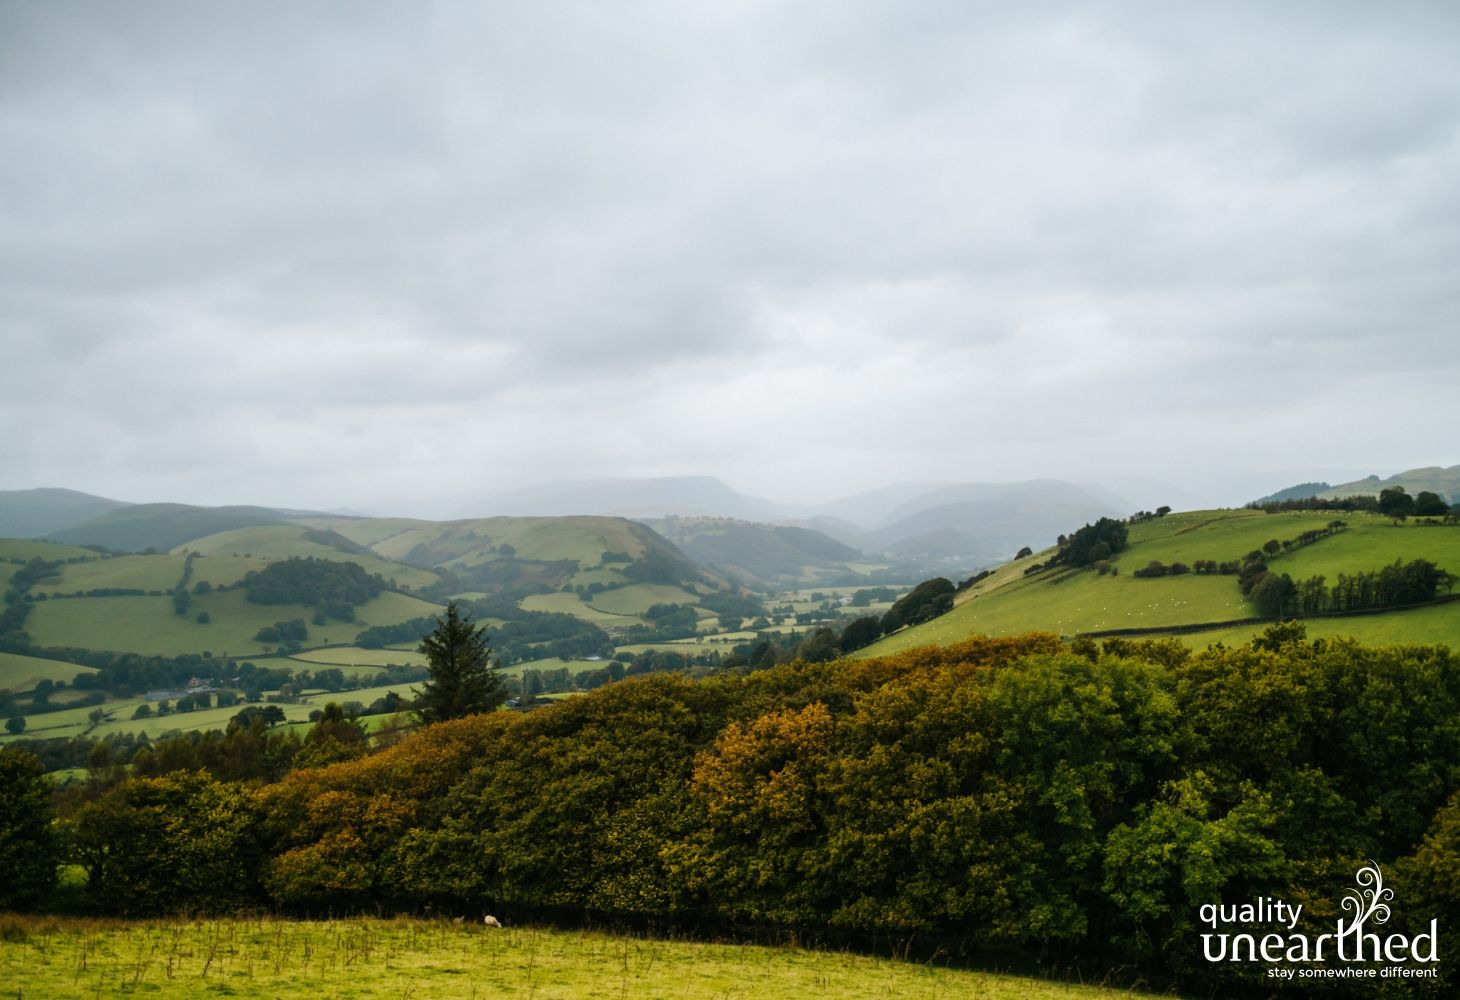 Scenes near the treehouses of the Mid Wales countryside and the Cader Idris mountain range